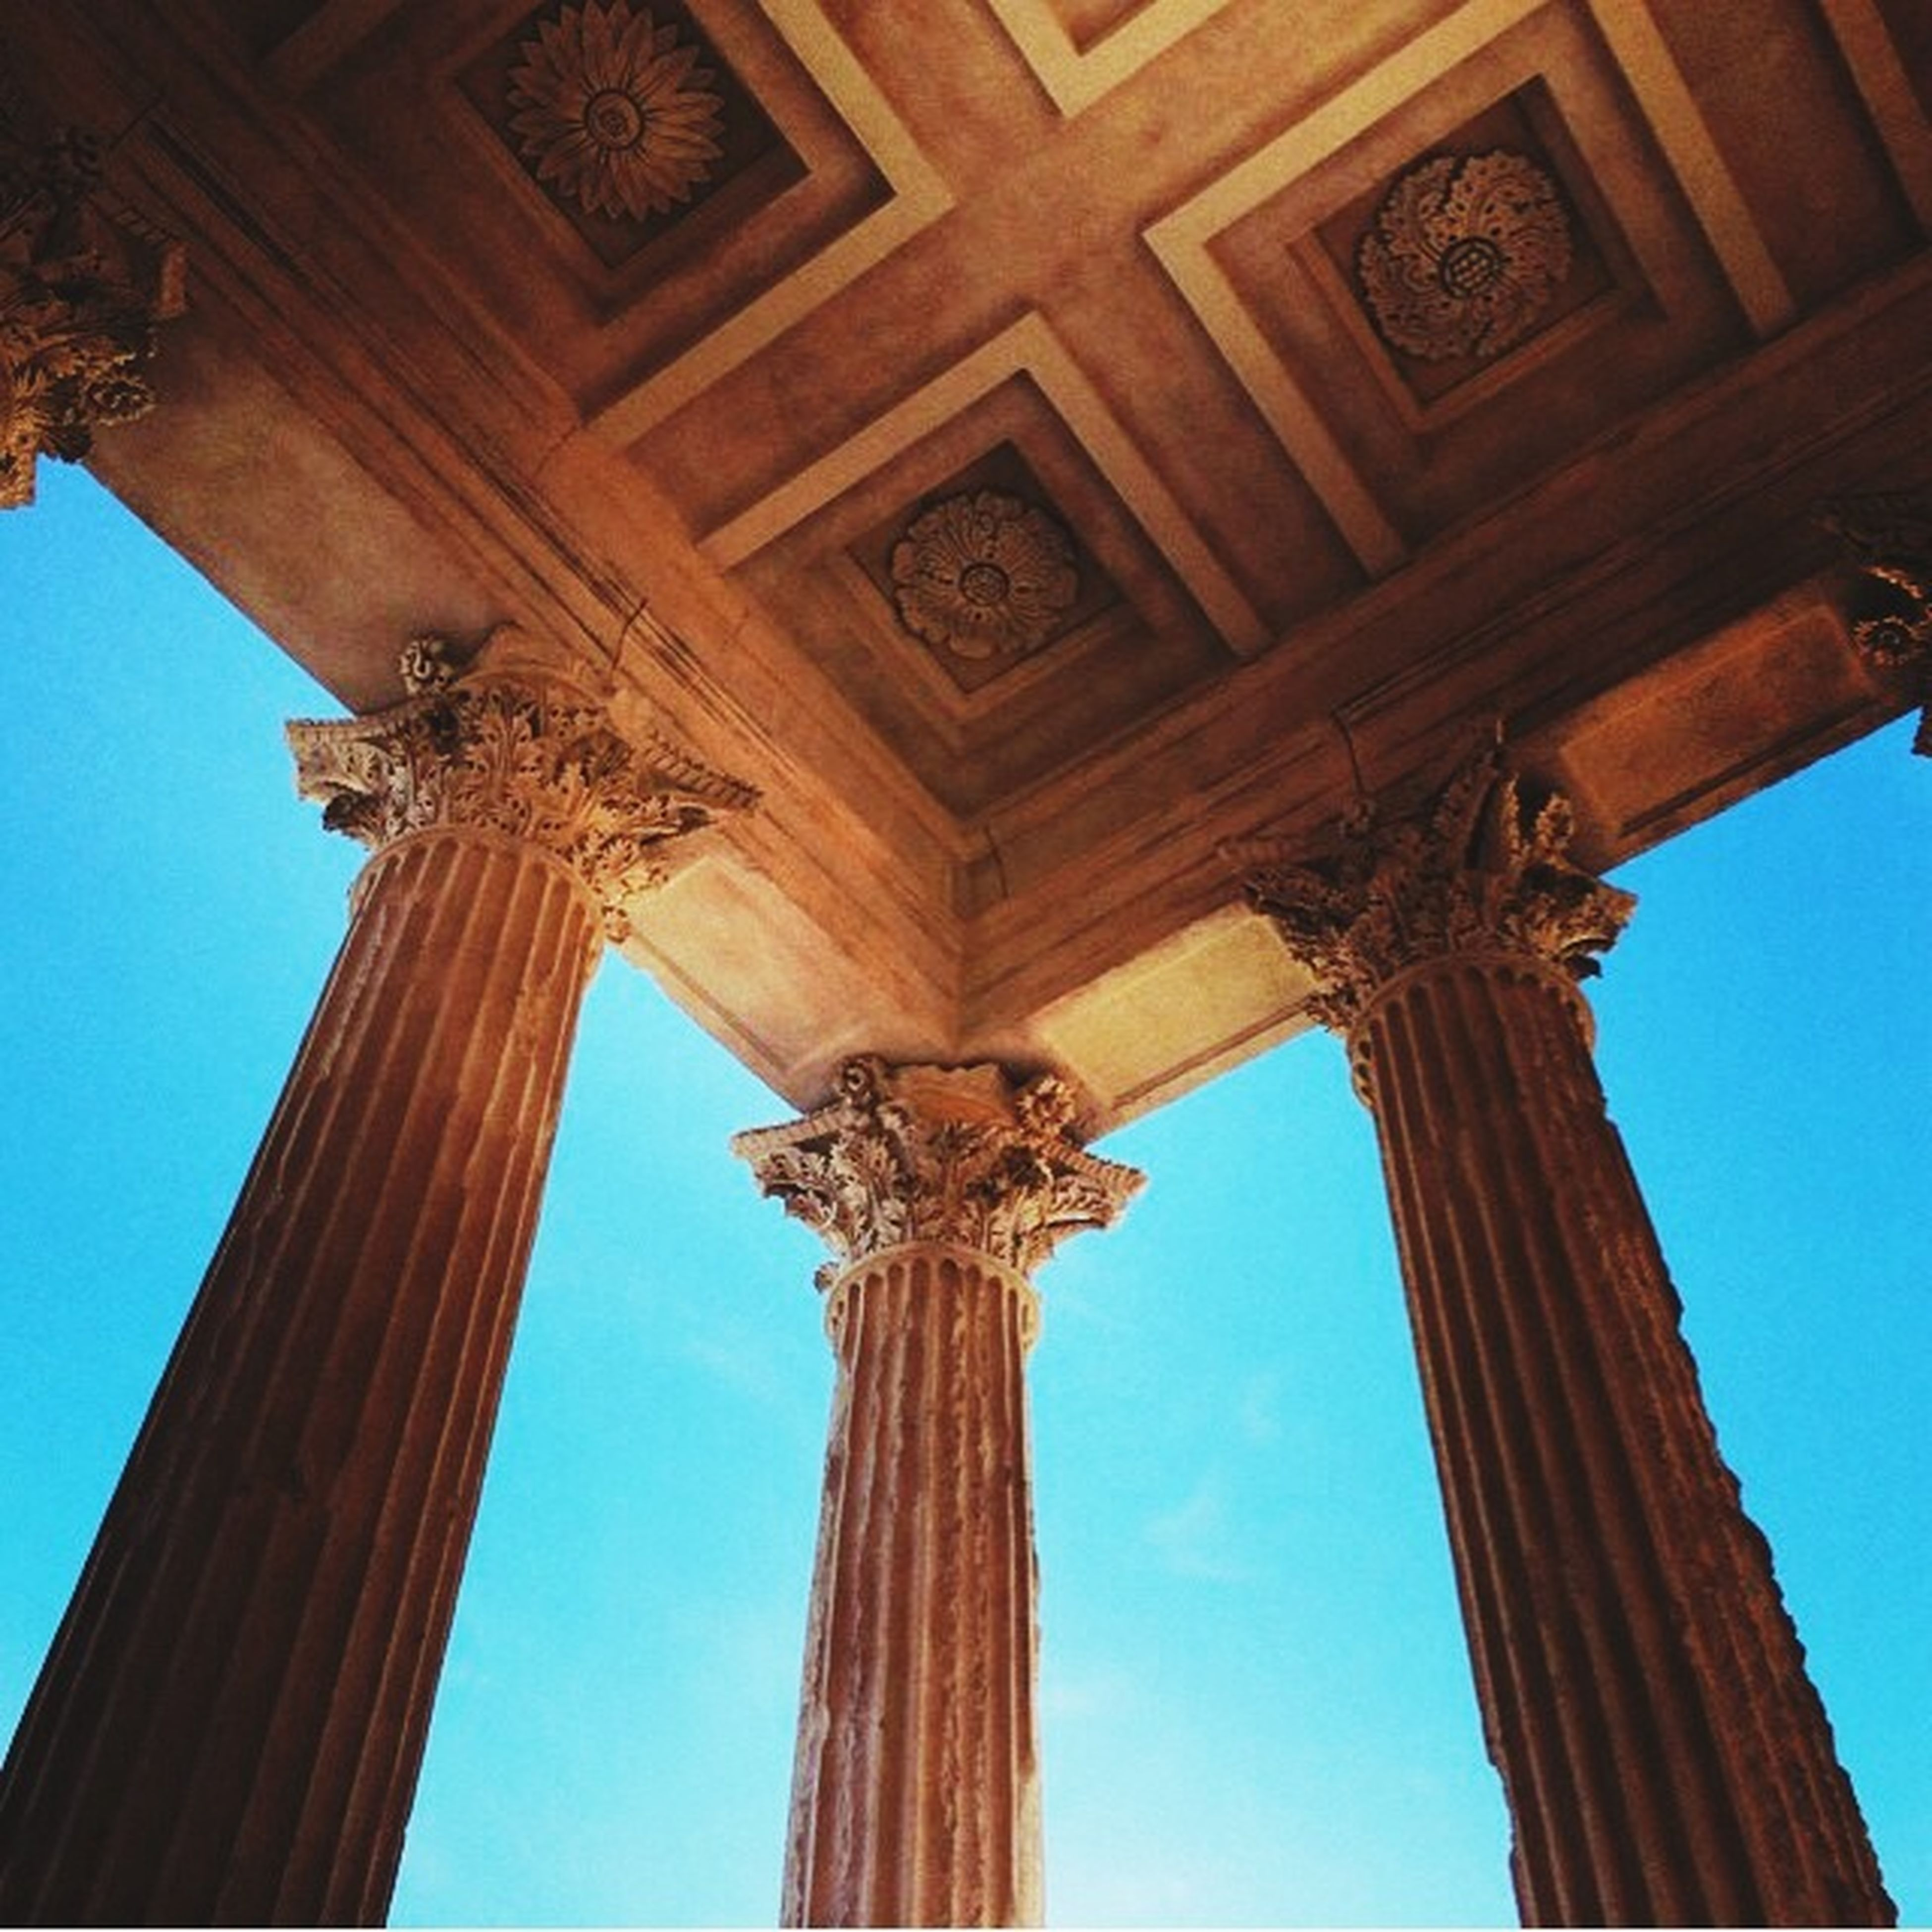 low angle view, architecture, built structure, architectural column, clear sky, column, history, blue, famous place, old, travel destinations, day, the past, architectural feature, international landmark, no people, old ruin, tourism, sky, travel